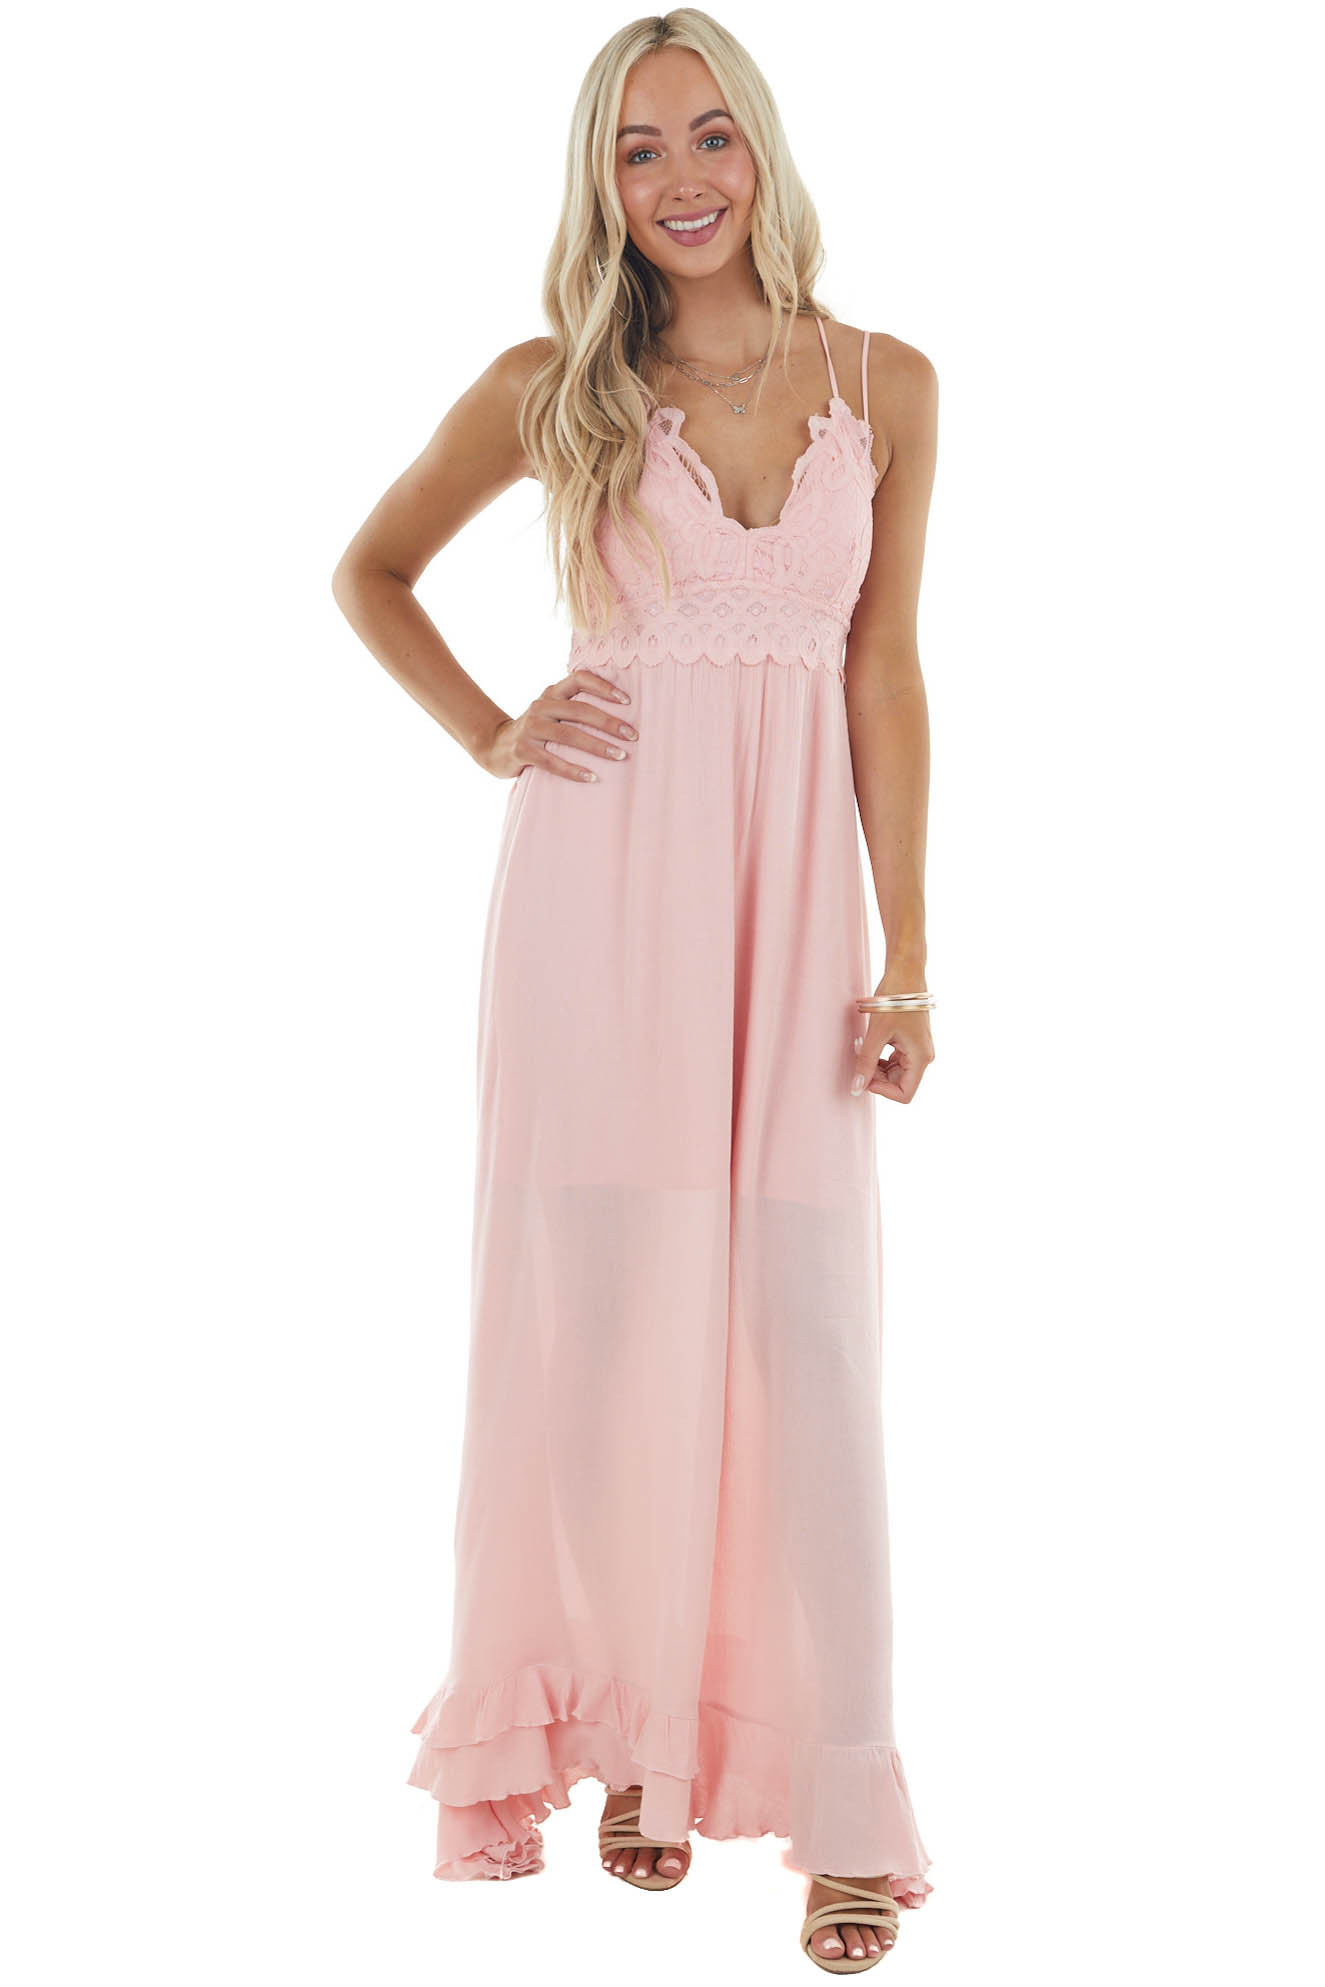 Cherry Blossom Sleeveless Woven Maxi Dress with Lace Detail